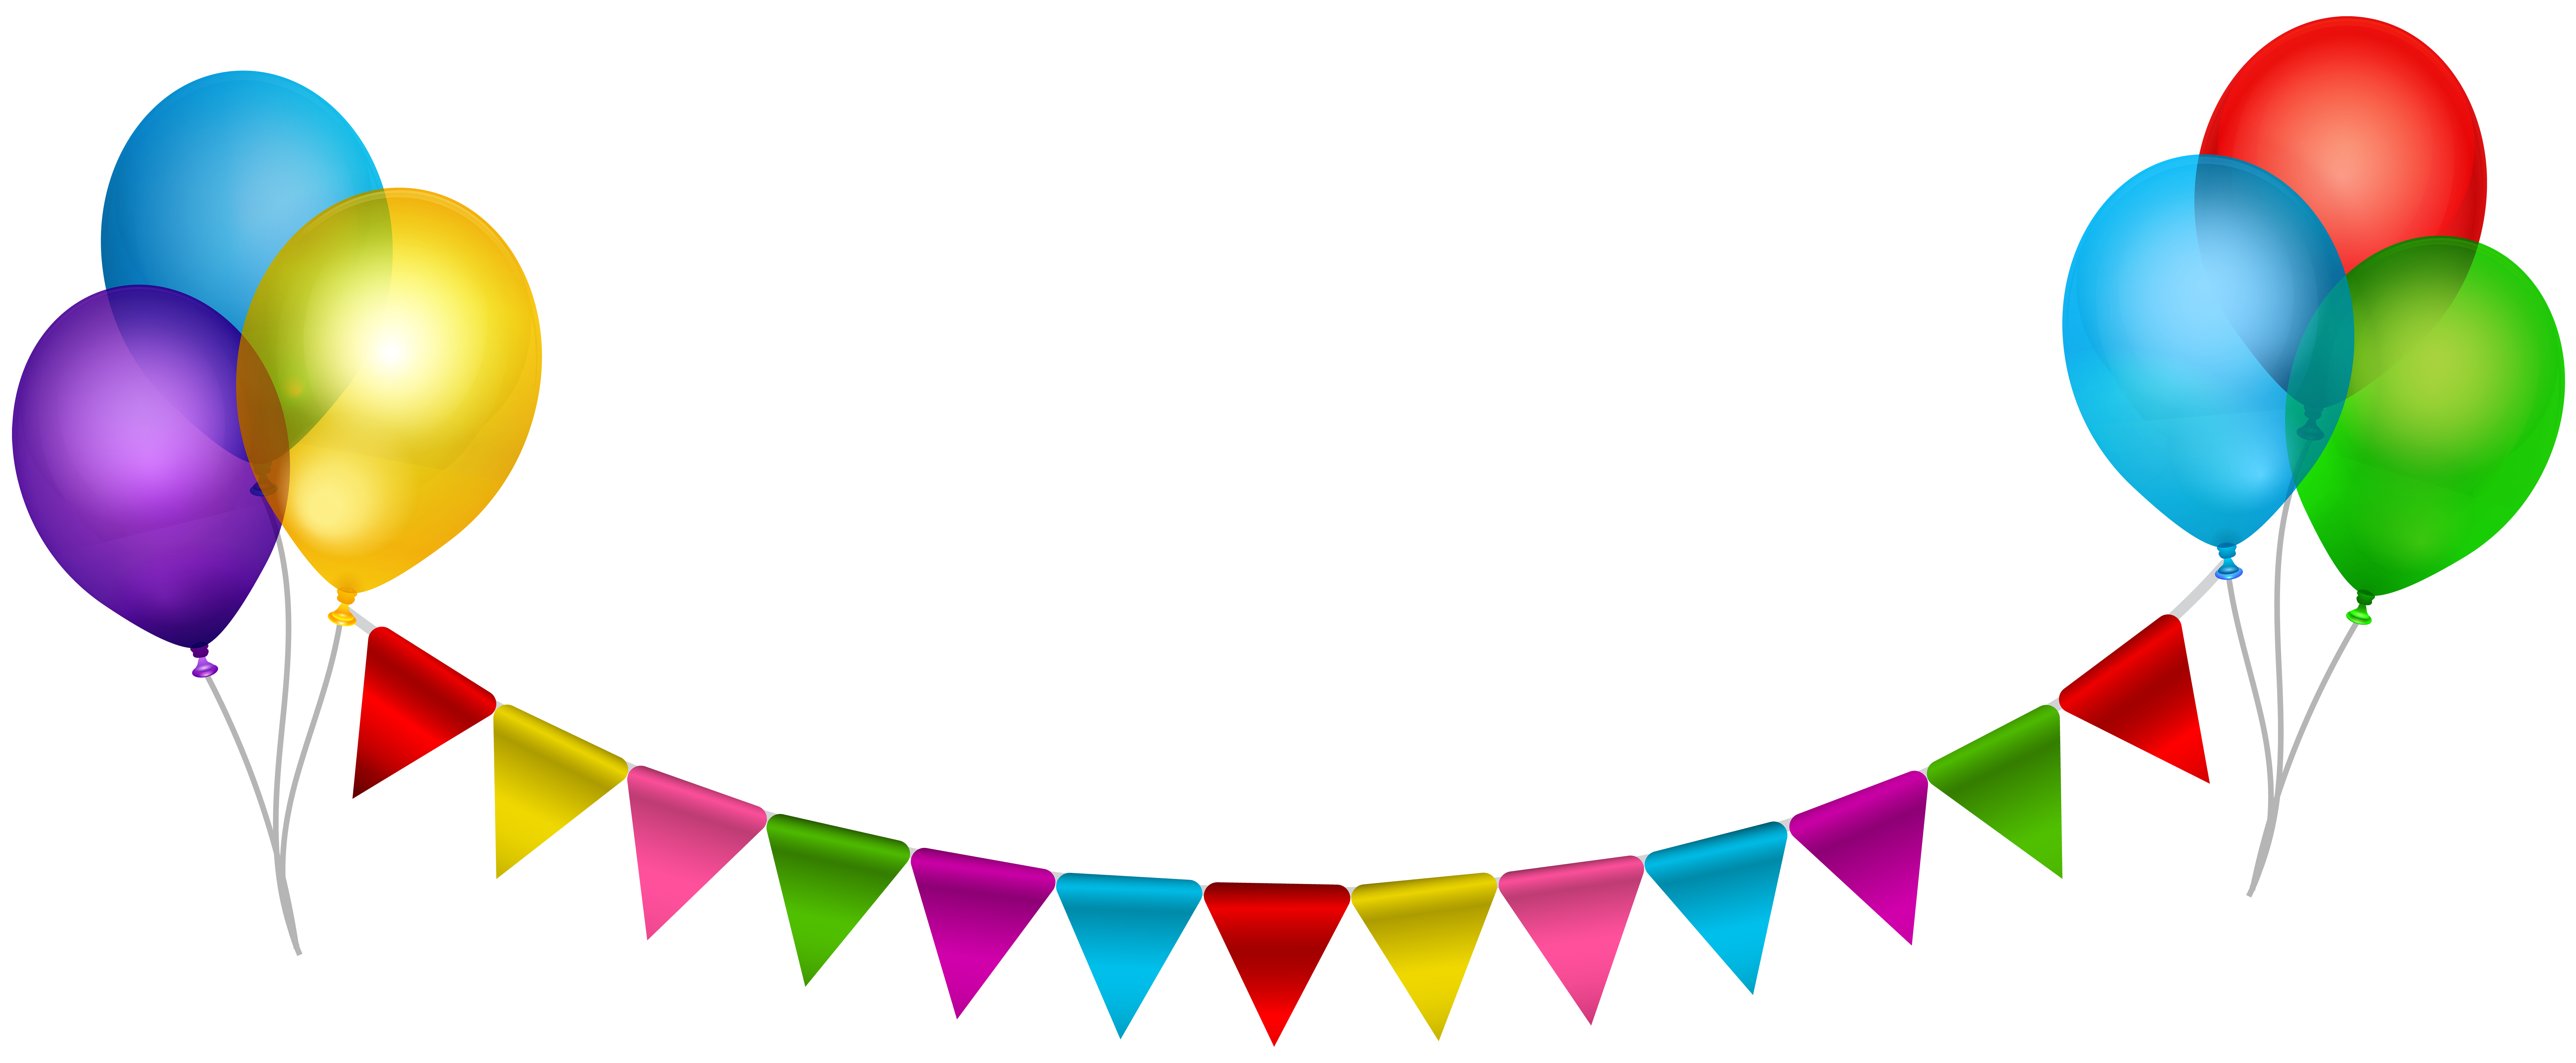 Party streamer png. Balloon clip art with